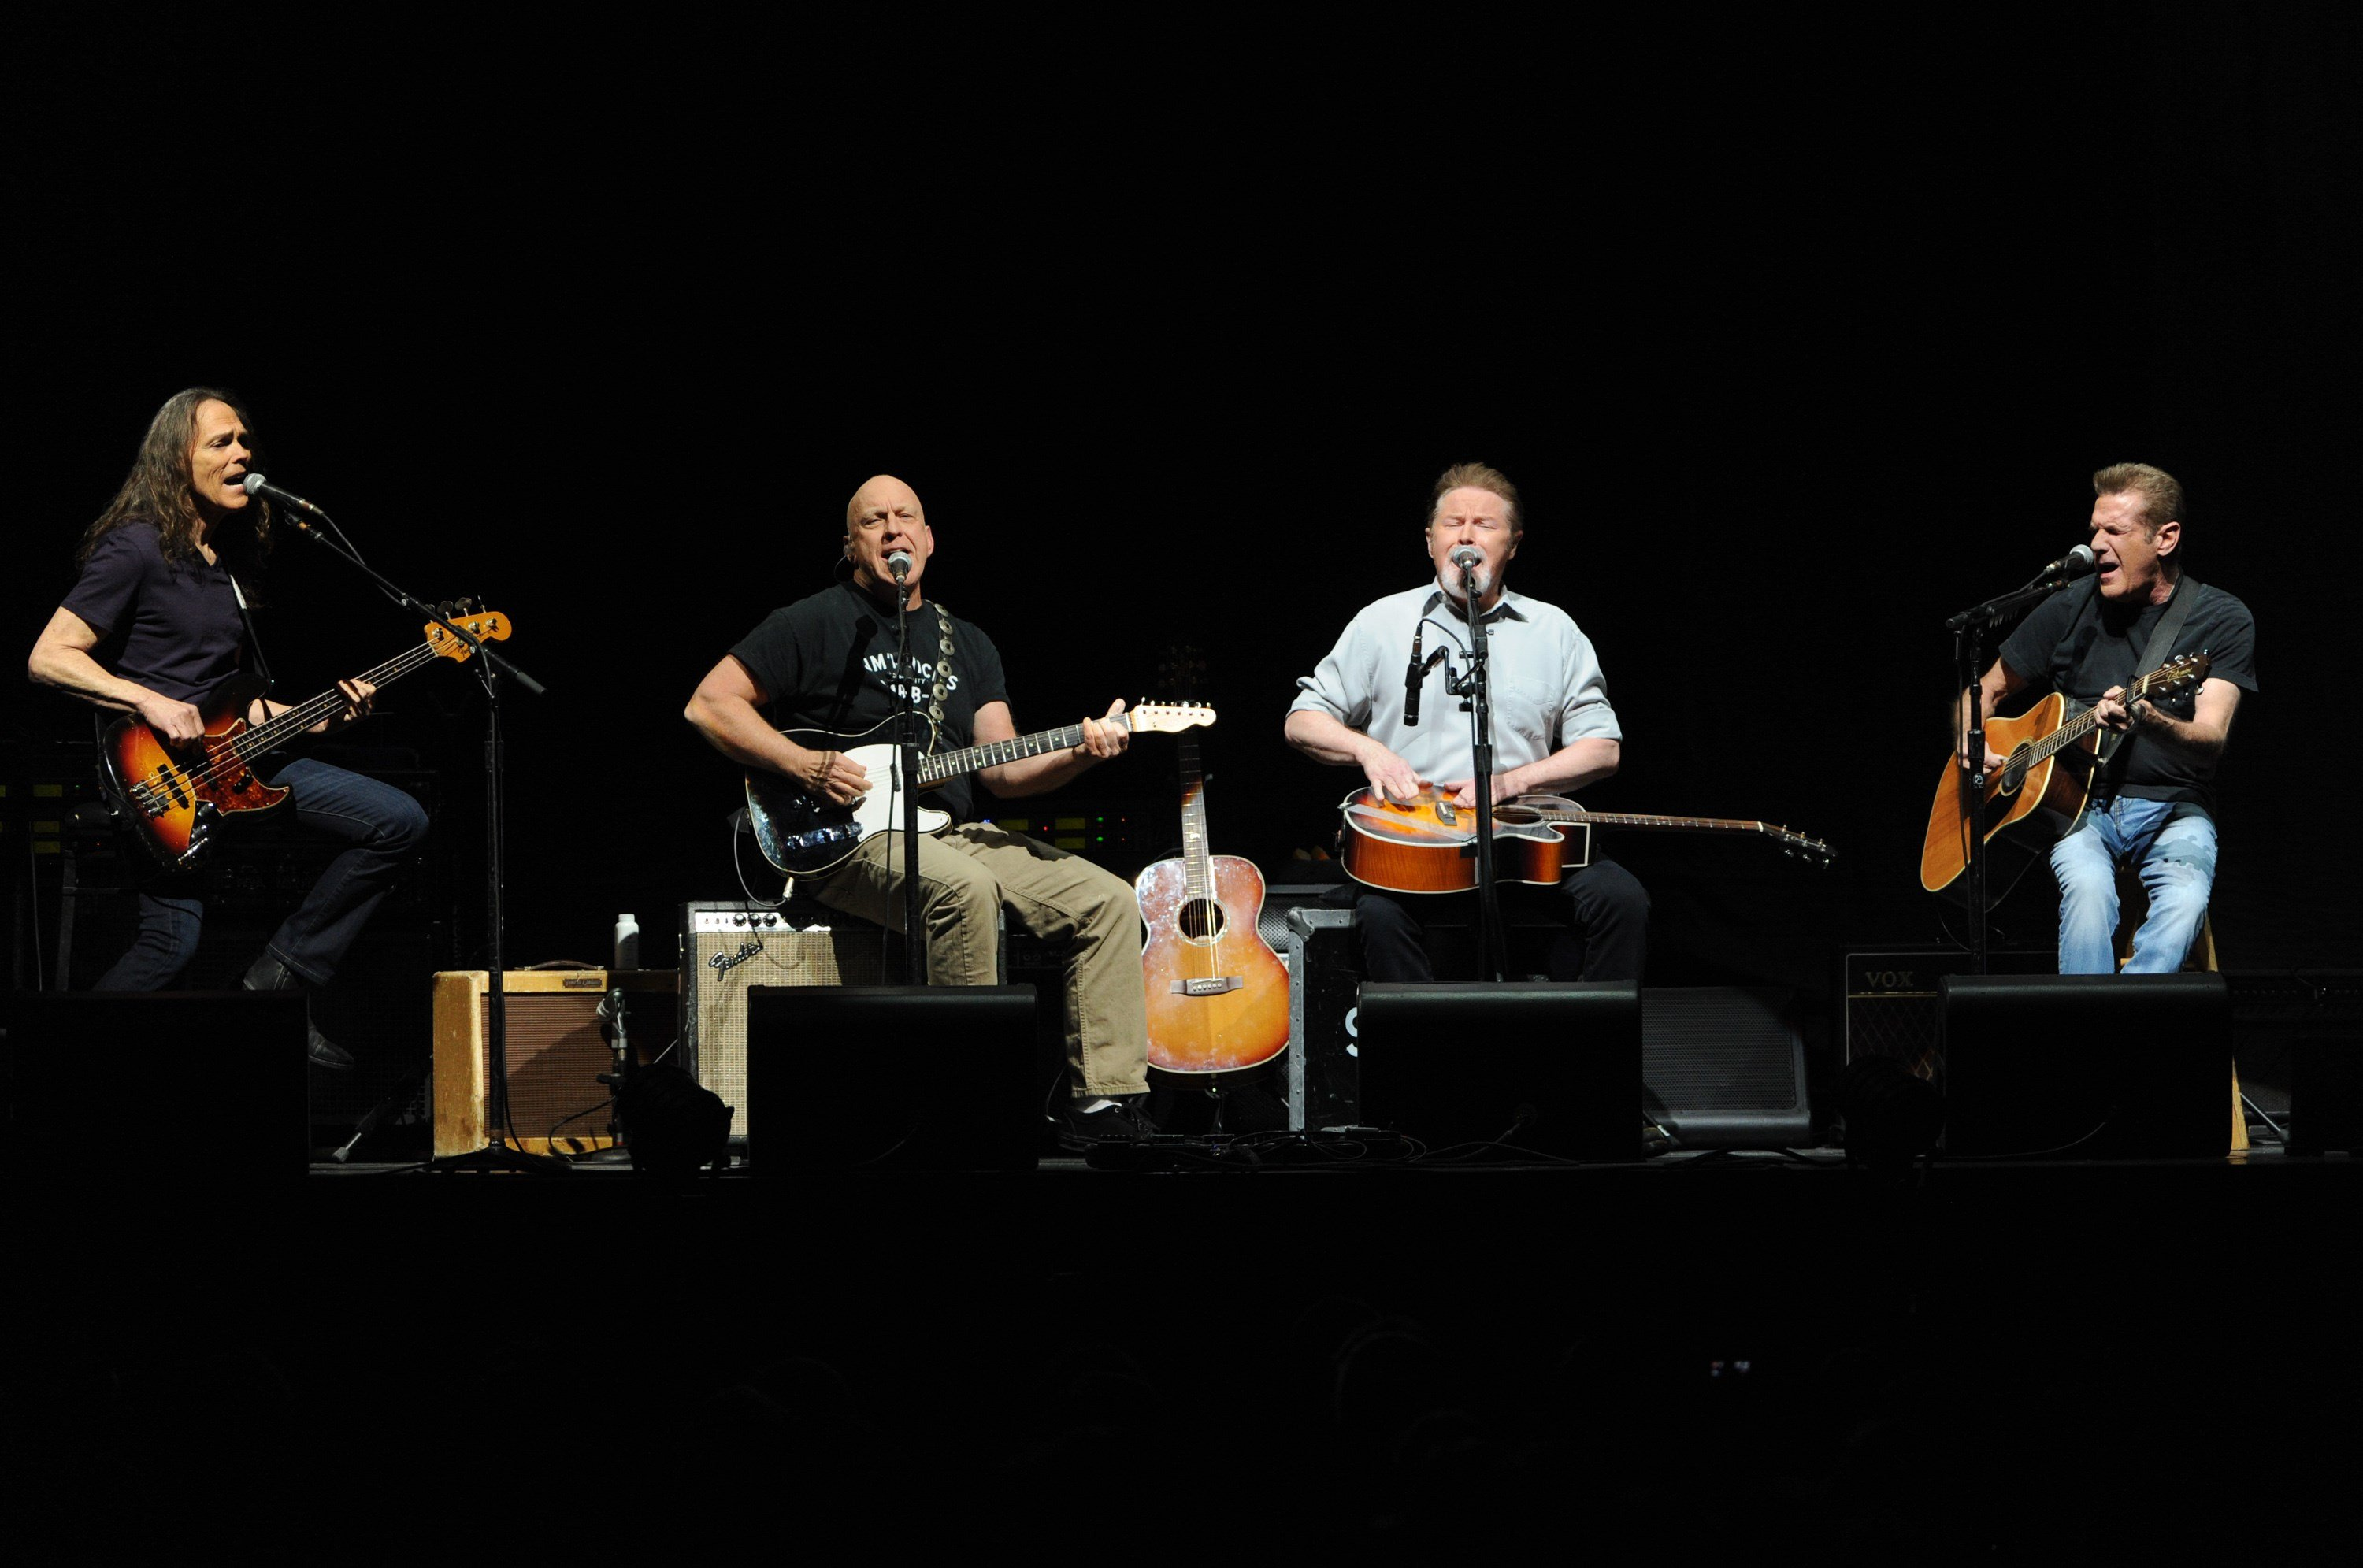 The Eagles, from left, Timothy B. Schmit, Bernie Leadon, Glenn Frey and Joe Walsh perform at Madison Square Garden on Friday, Nov. 8, 2013 in New York. (Source: Associated Press)